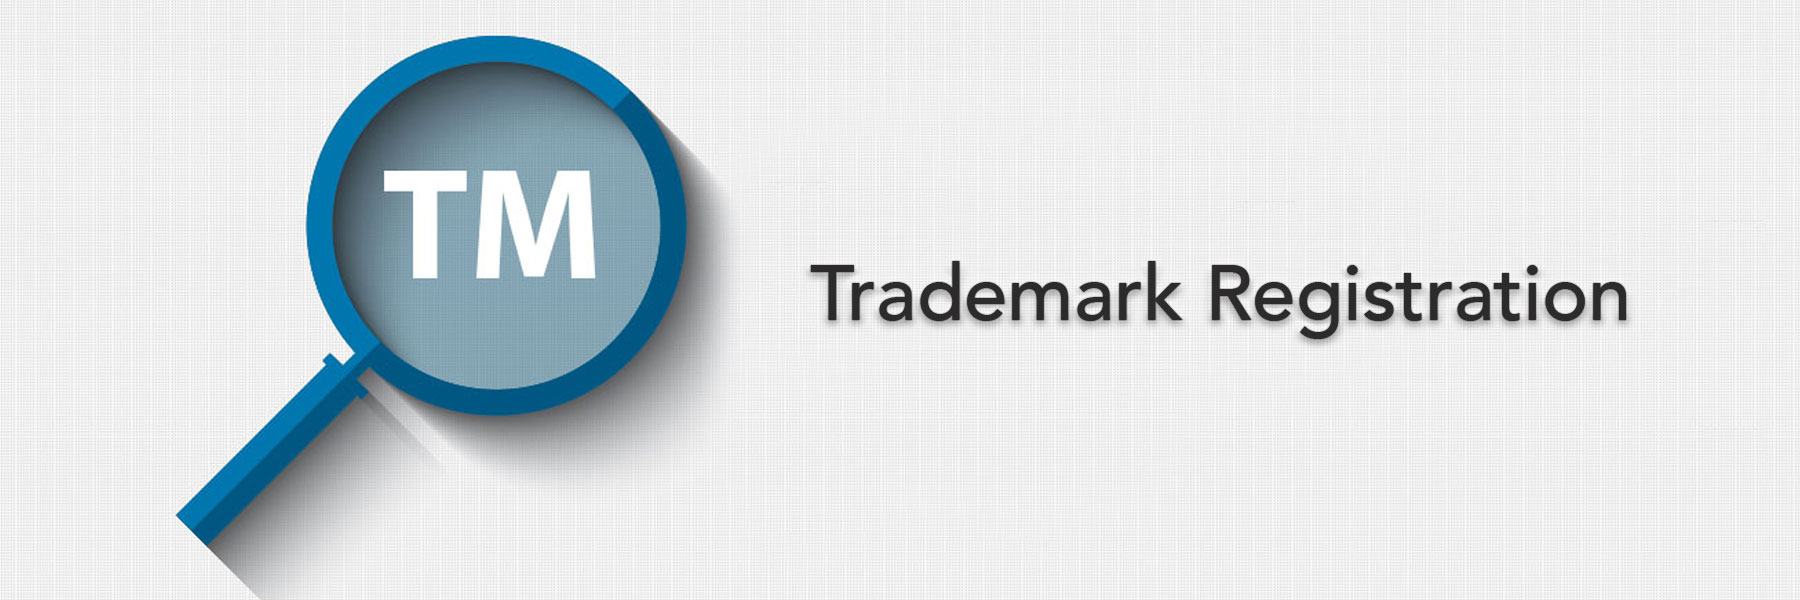 Trademark Registration in India- An Easy and Hassle-free Process